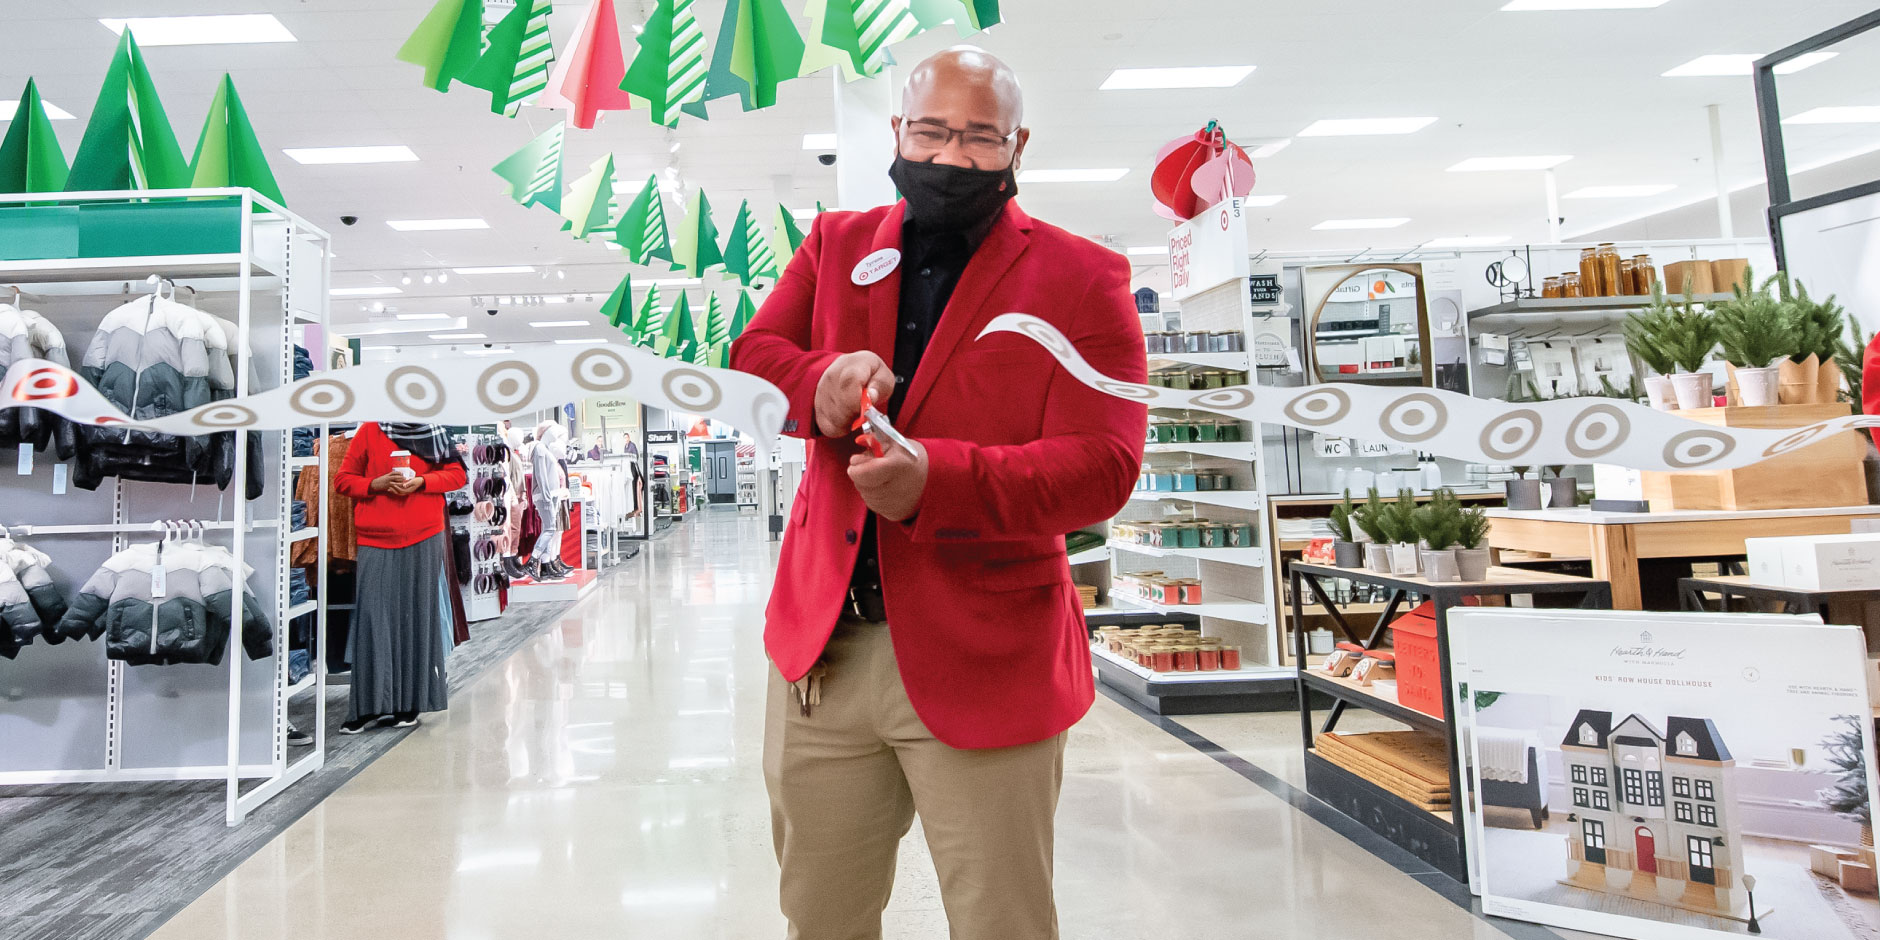 A target team member cuts a white ribbon that is covered in red Target bullseye logos. In the background, shelves of product.